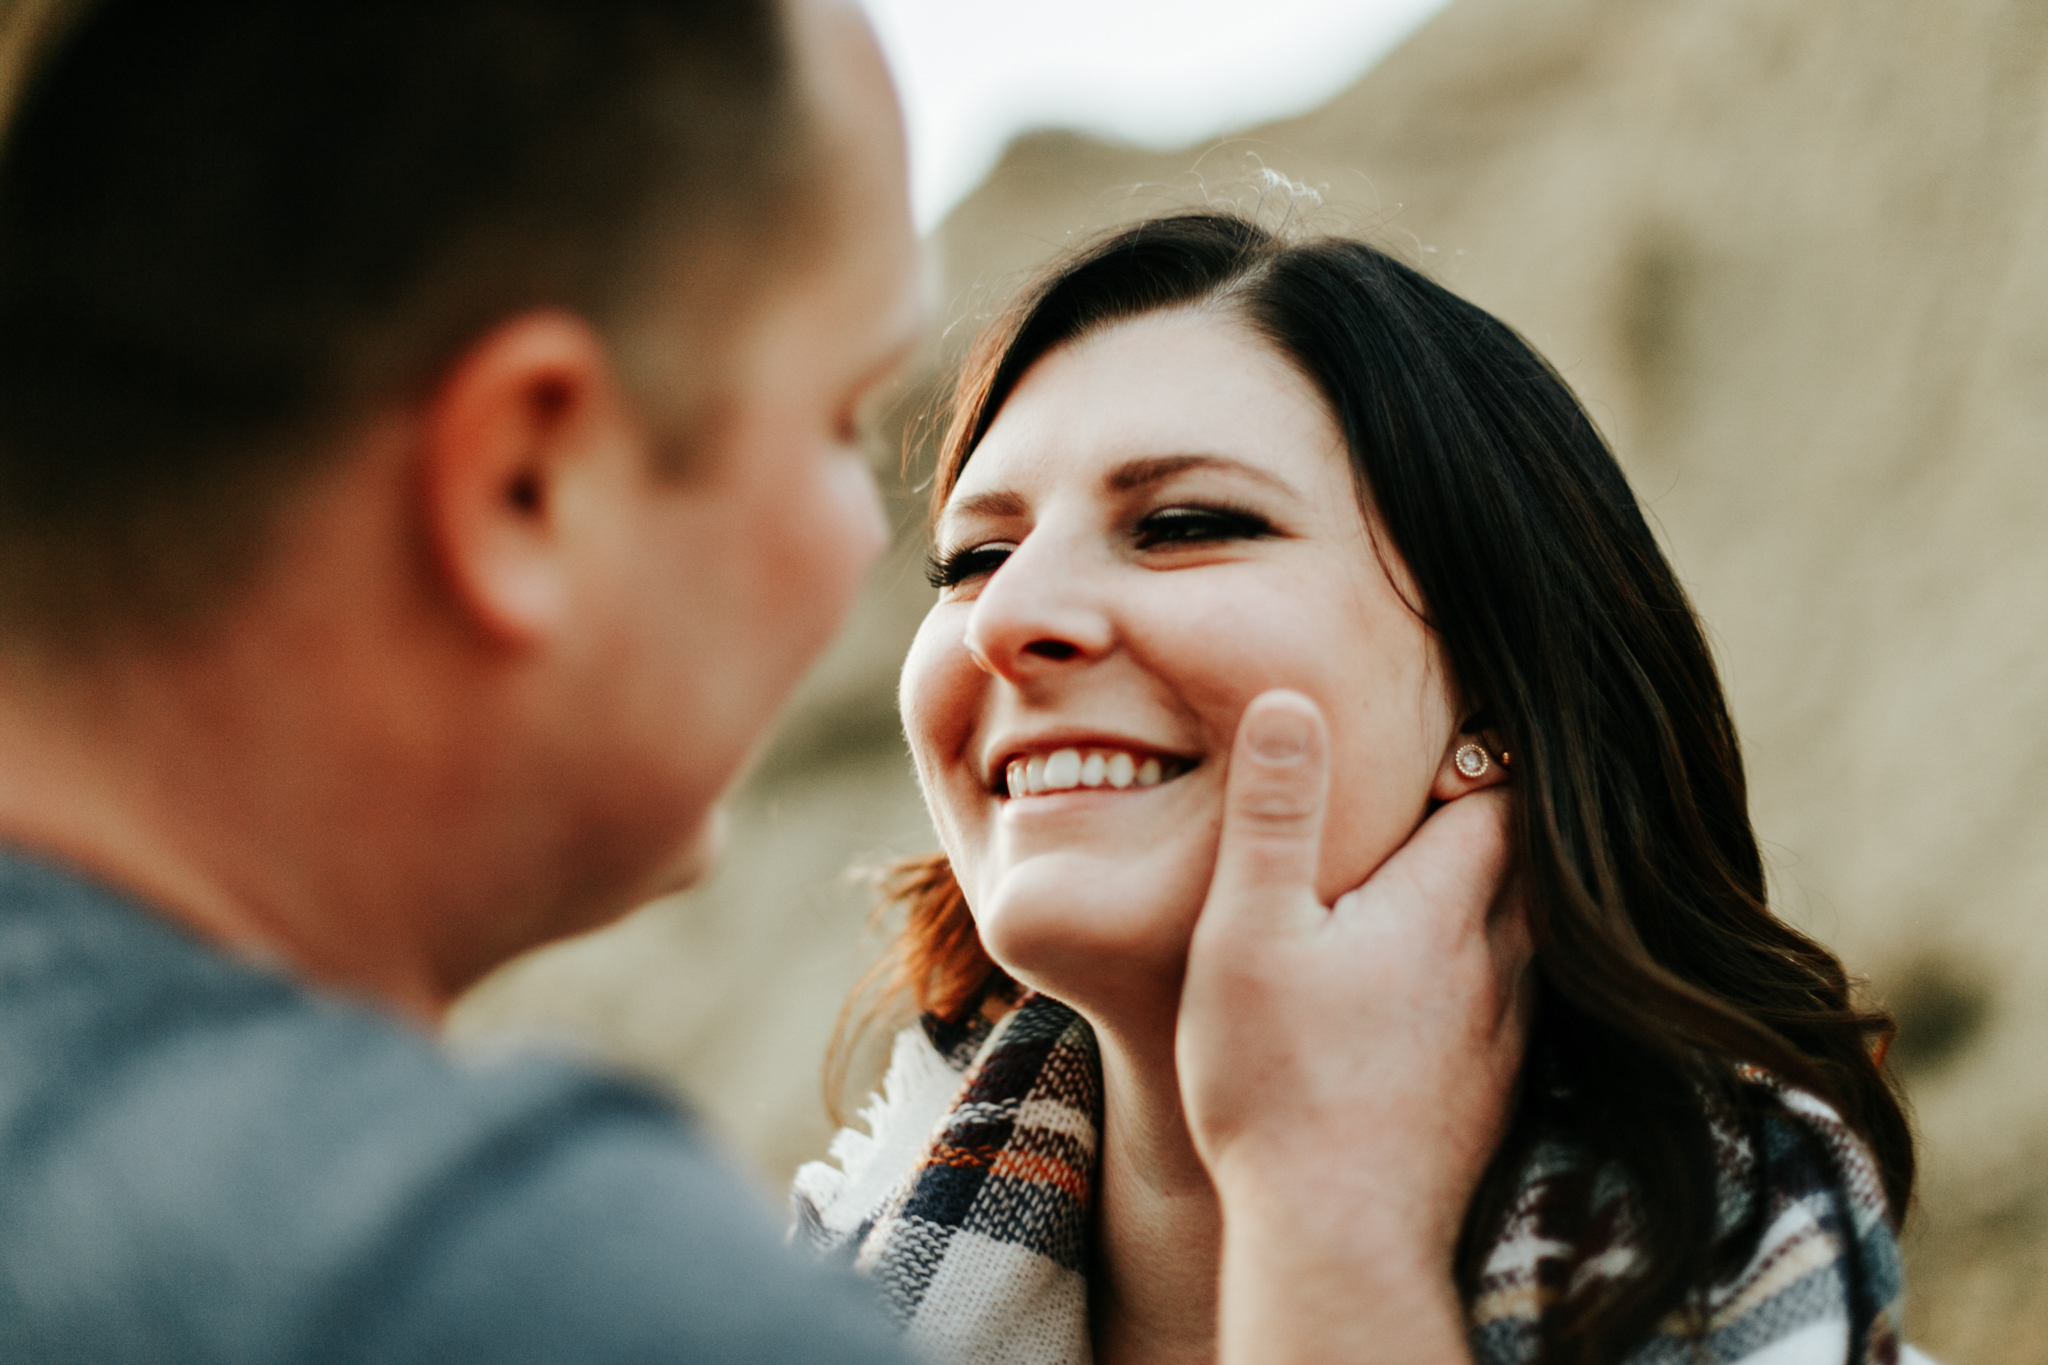 lethbridge-photographer-love-and-be-loved-photography-christy-bryan-fall-autumn-engagement-photo-image-picture-73.jpg